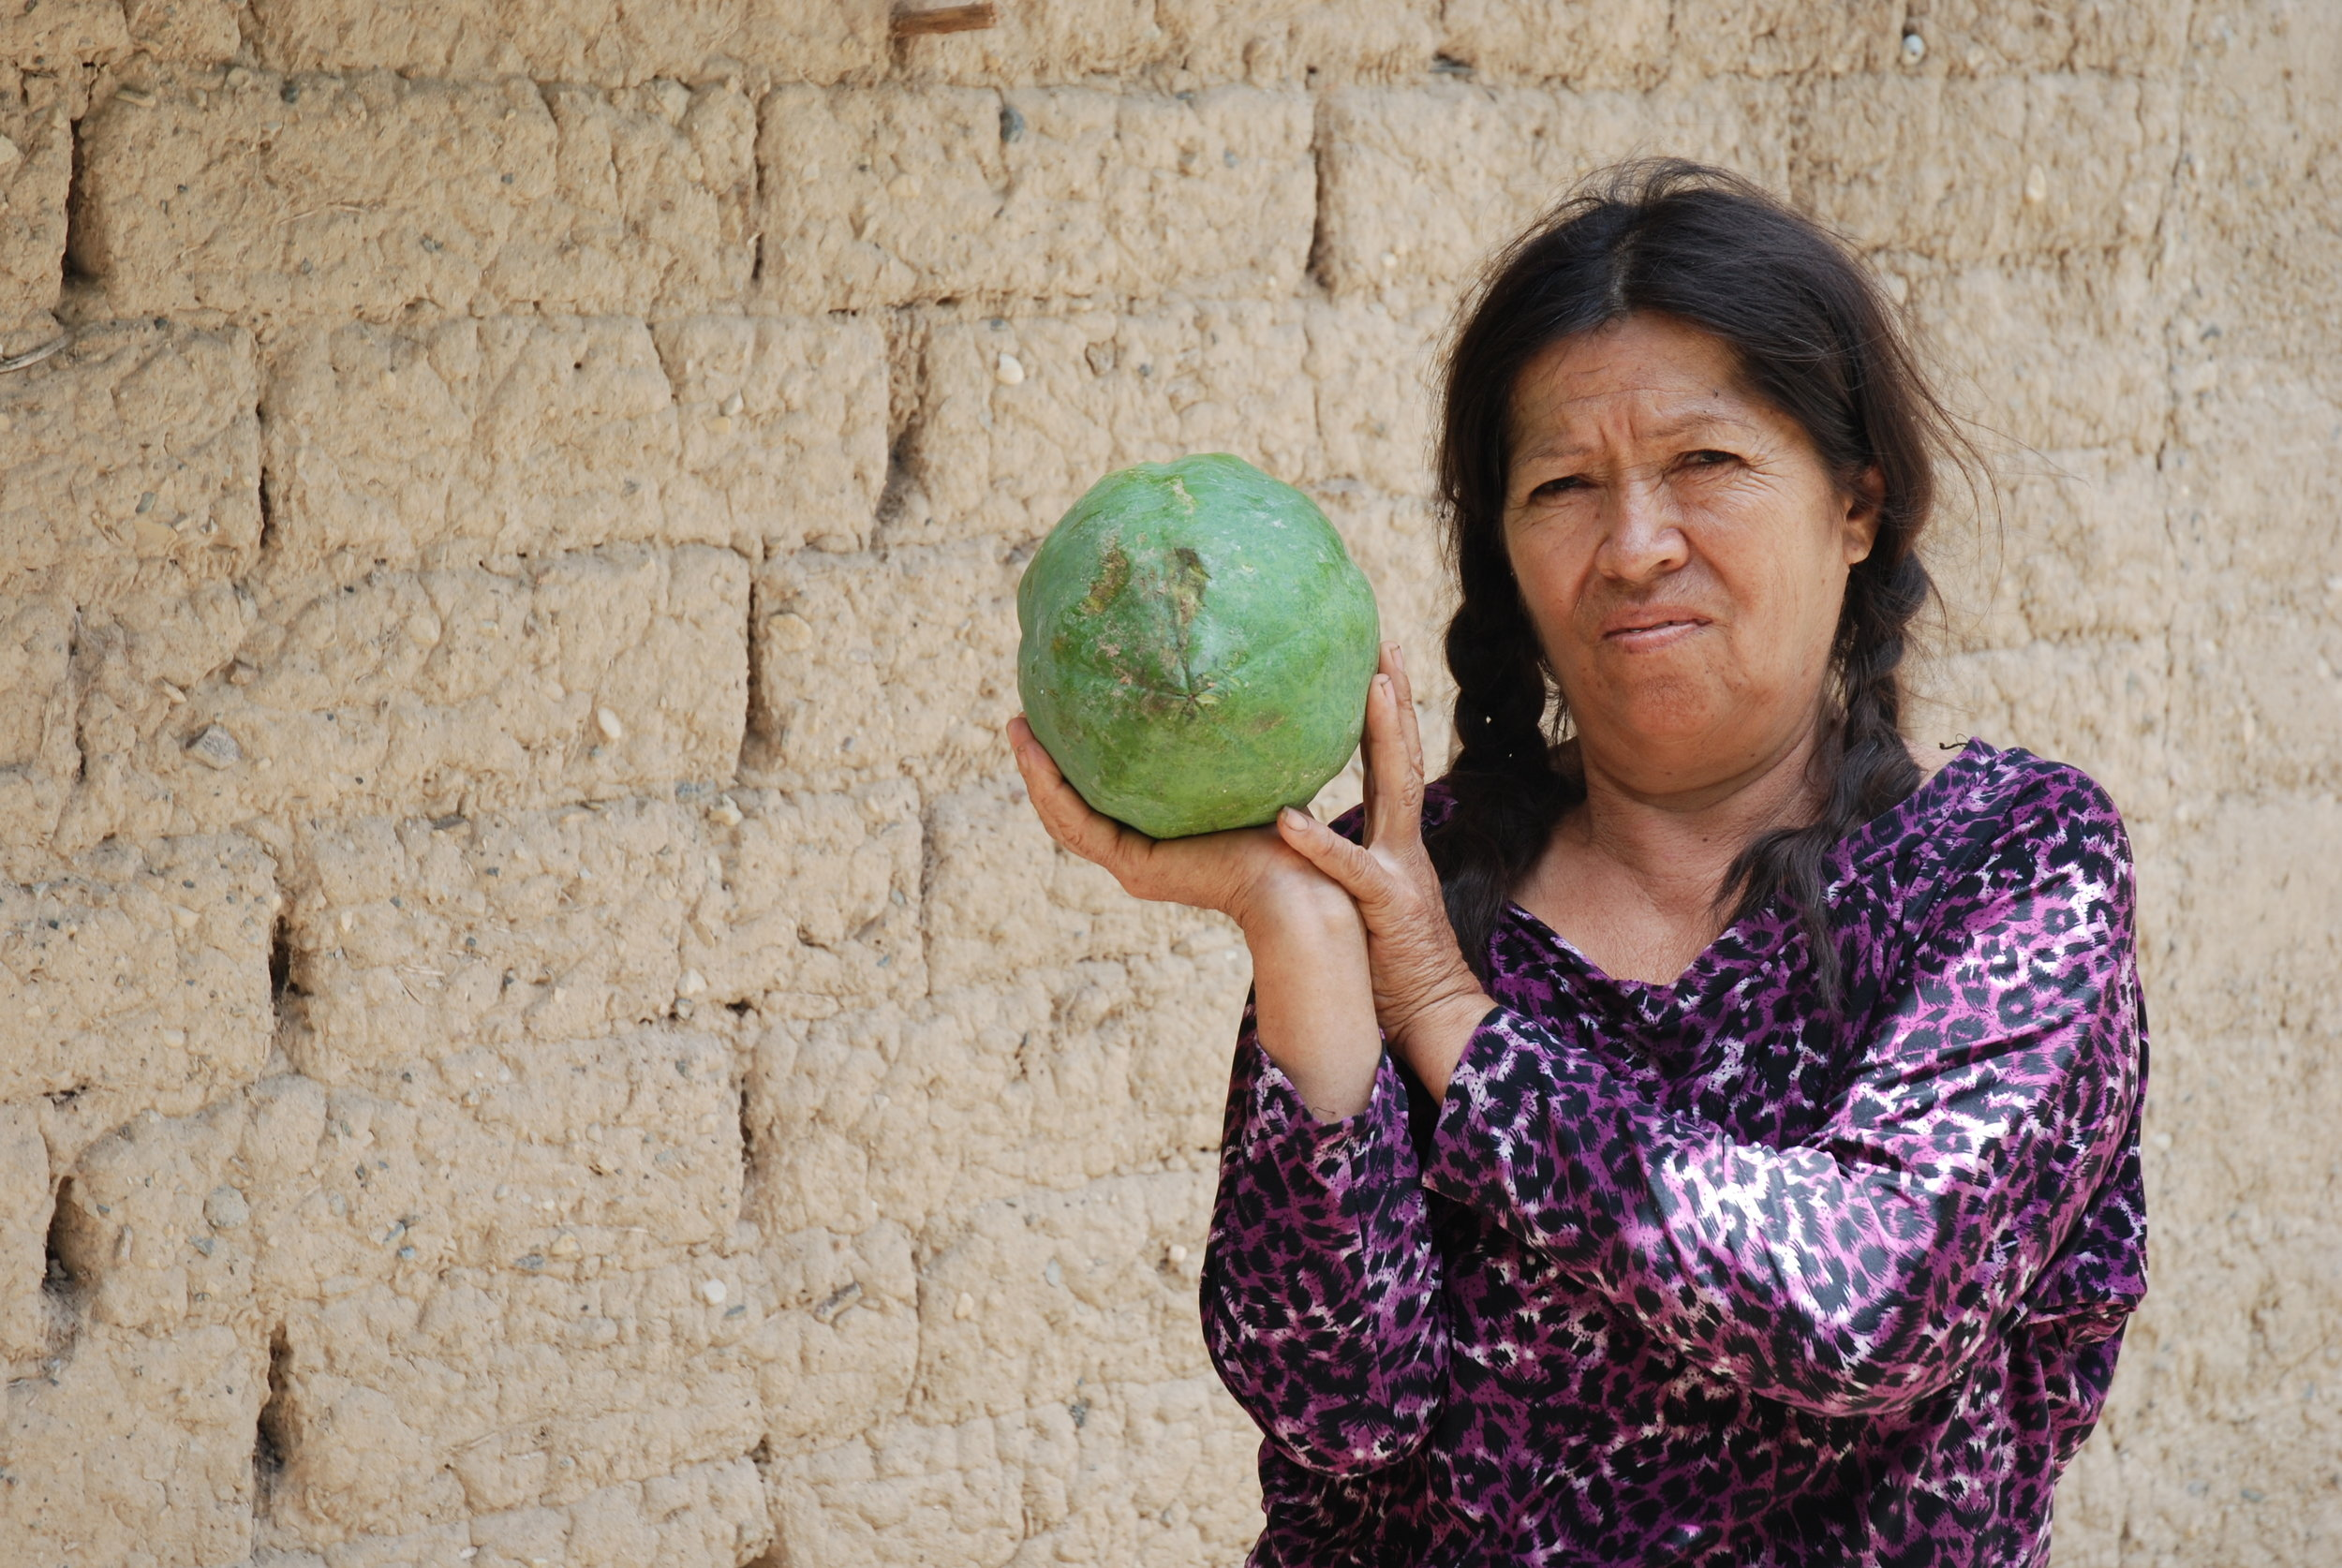 Angélica María Araujo, from Saumate village along the River Marañon, Peru. Her village stands to be flooded by the proposed Chadín 2 dam. Credit: David Hill